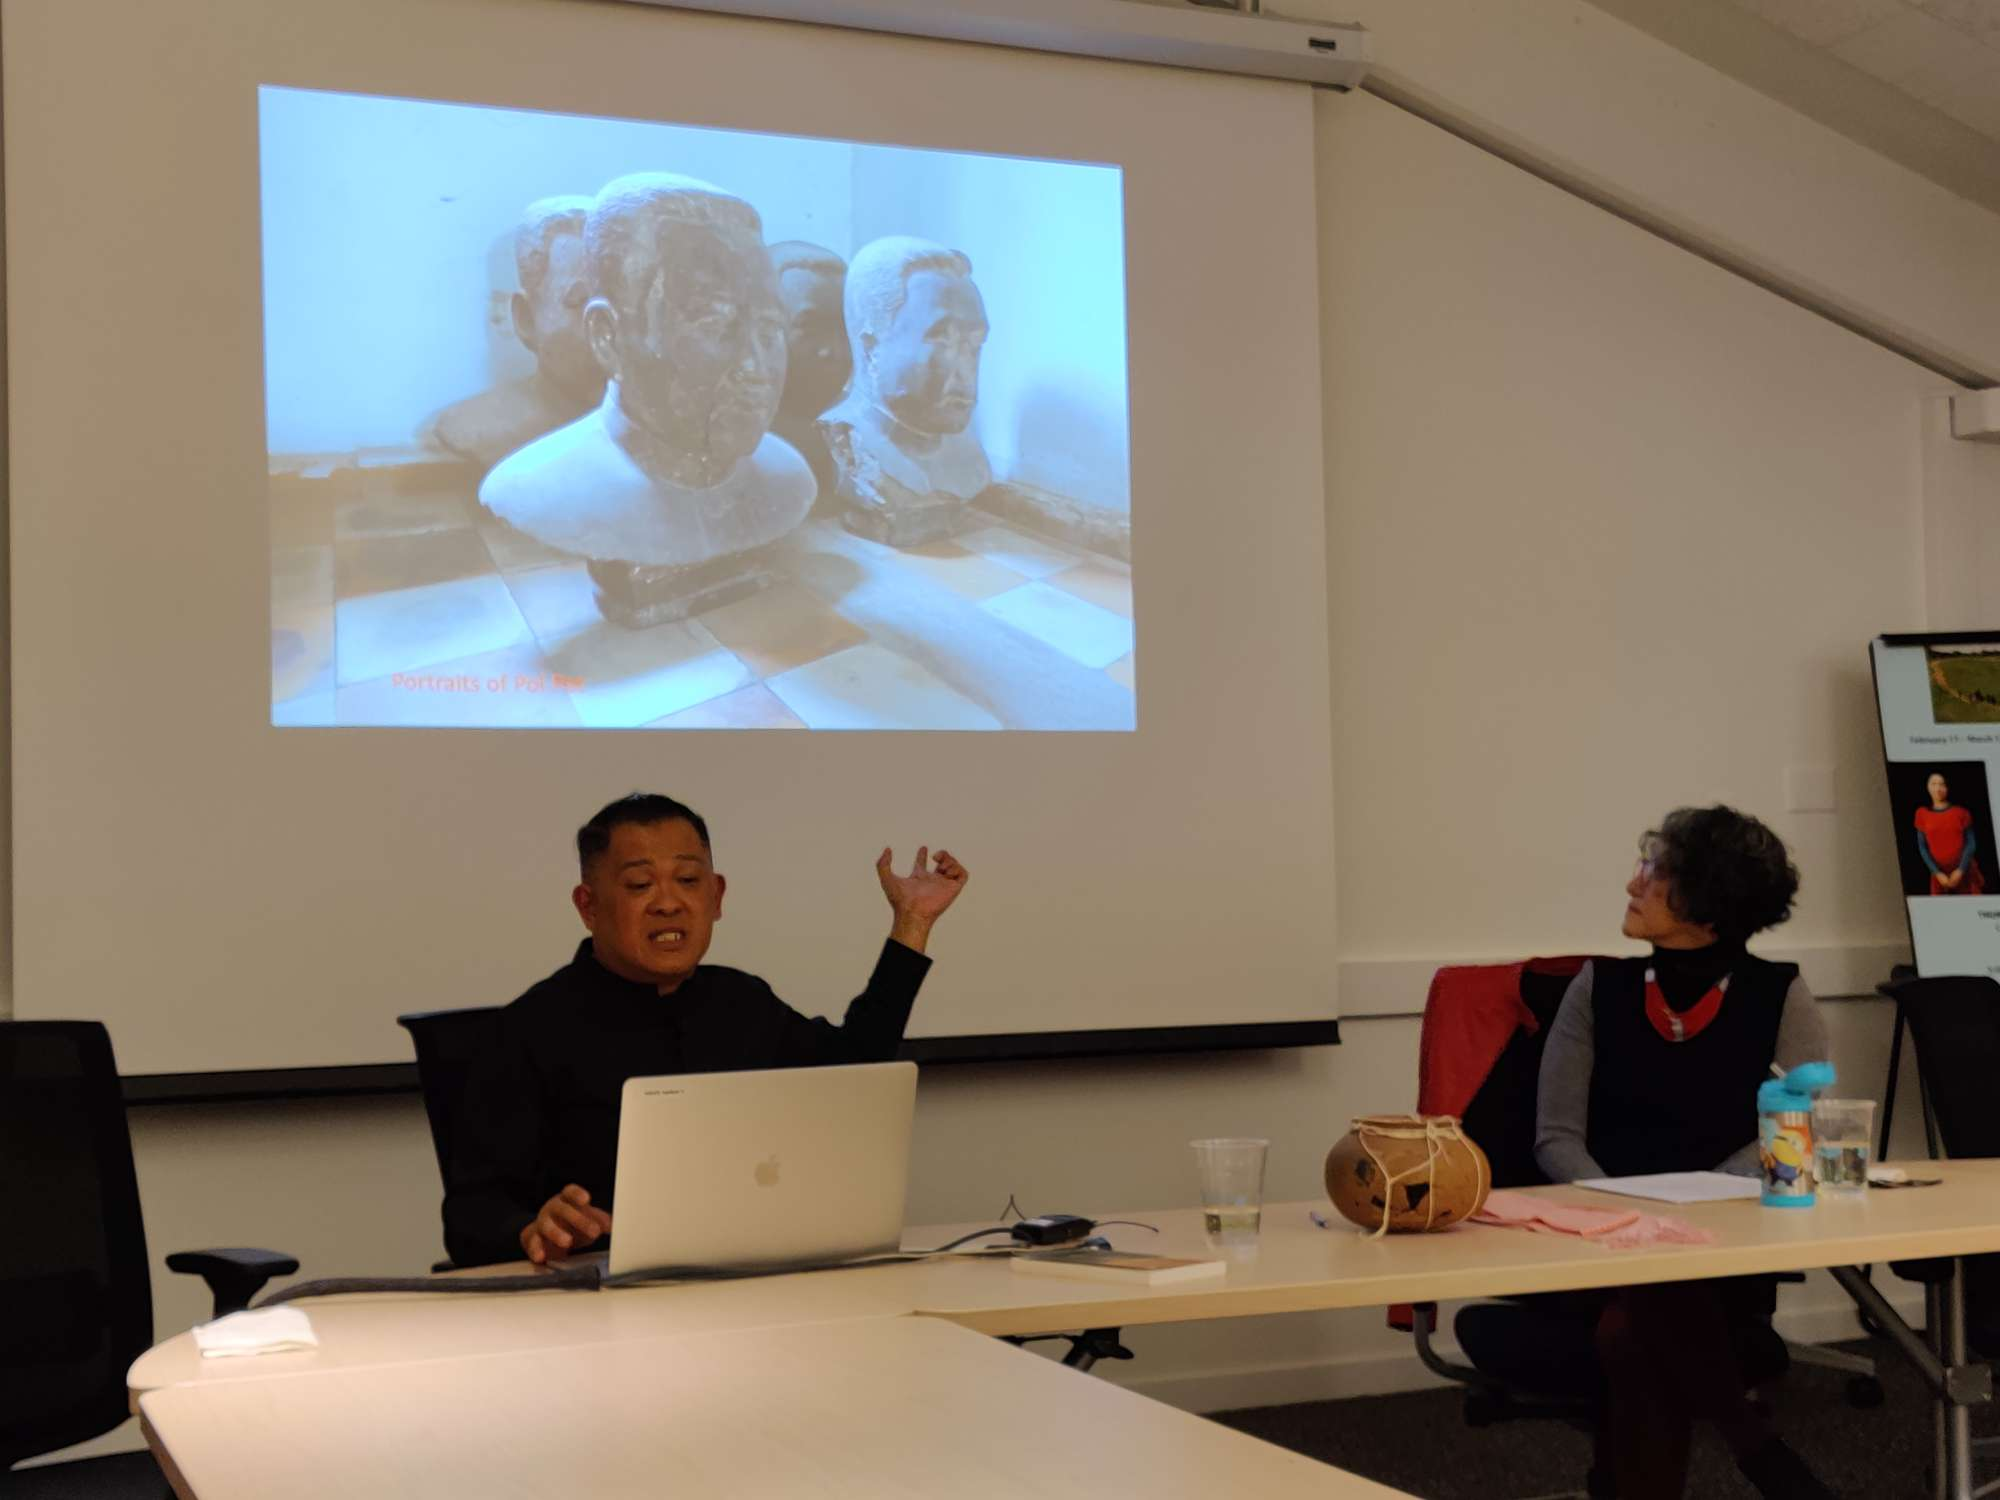 Color photograph of two people sitting in front of a white screen. An image of a sculpted portrait is projected on the screen.